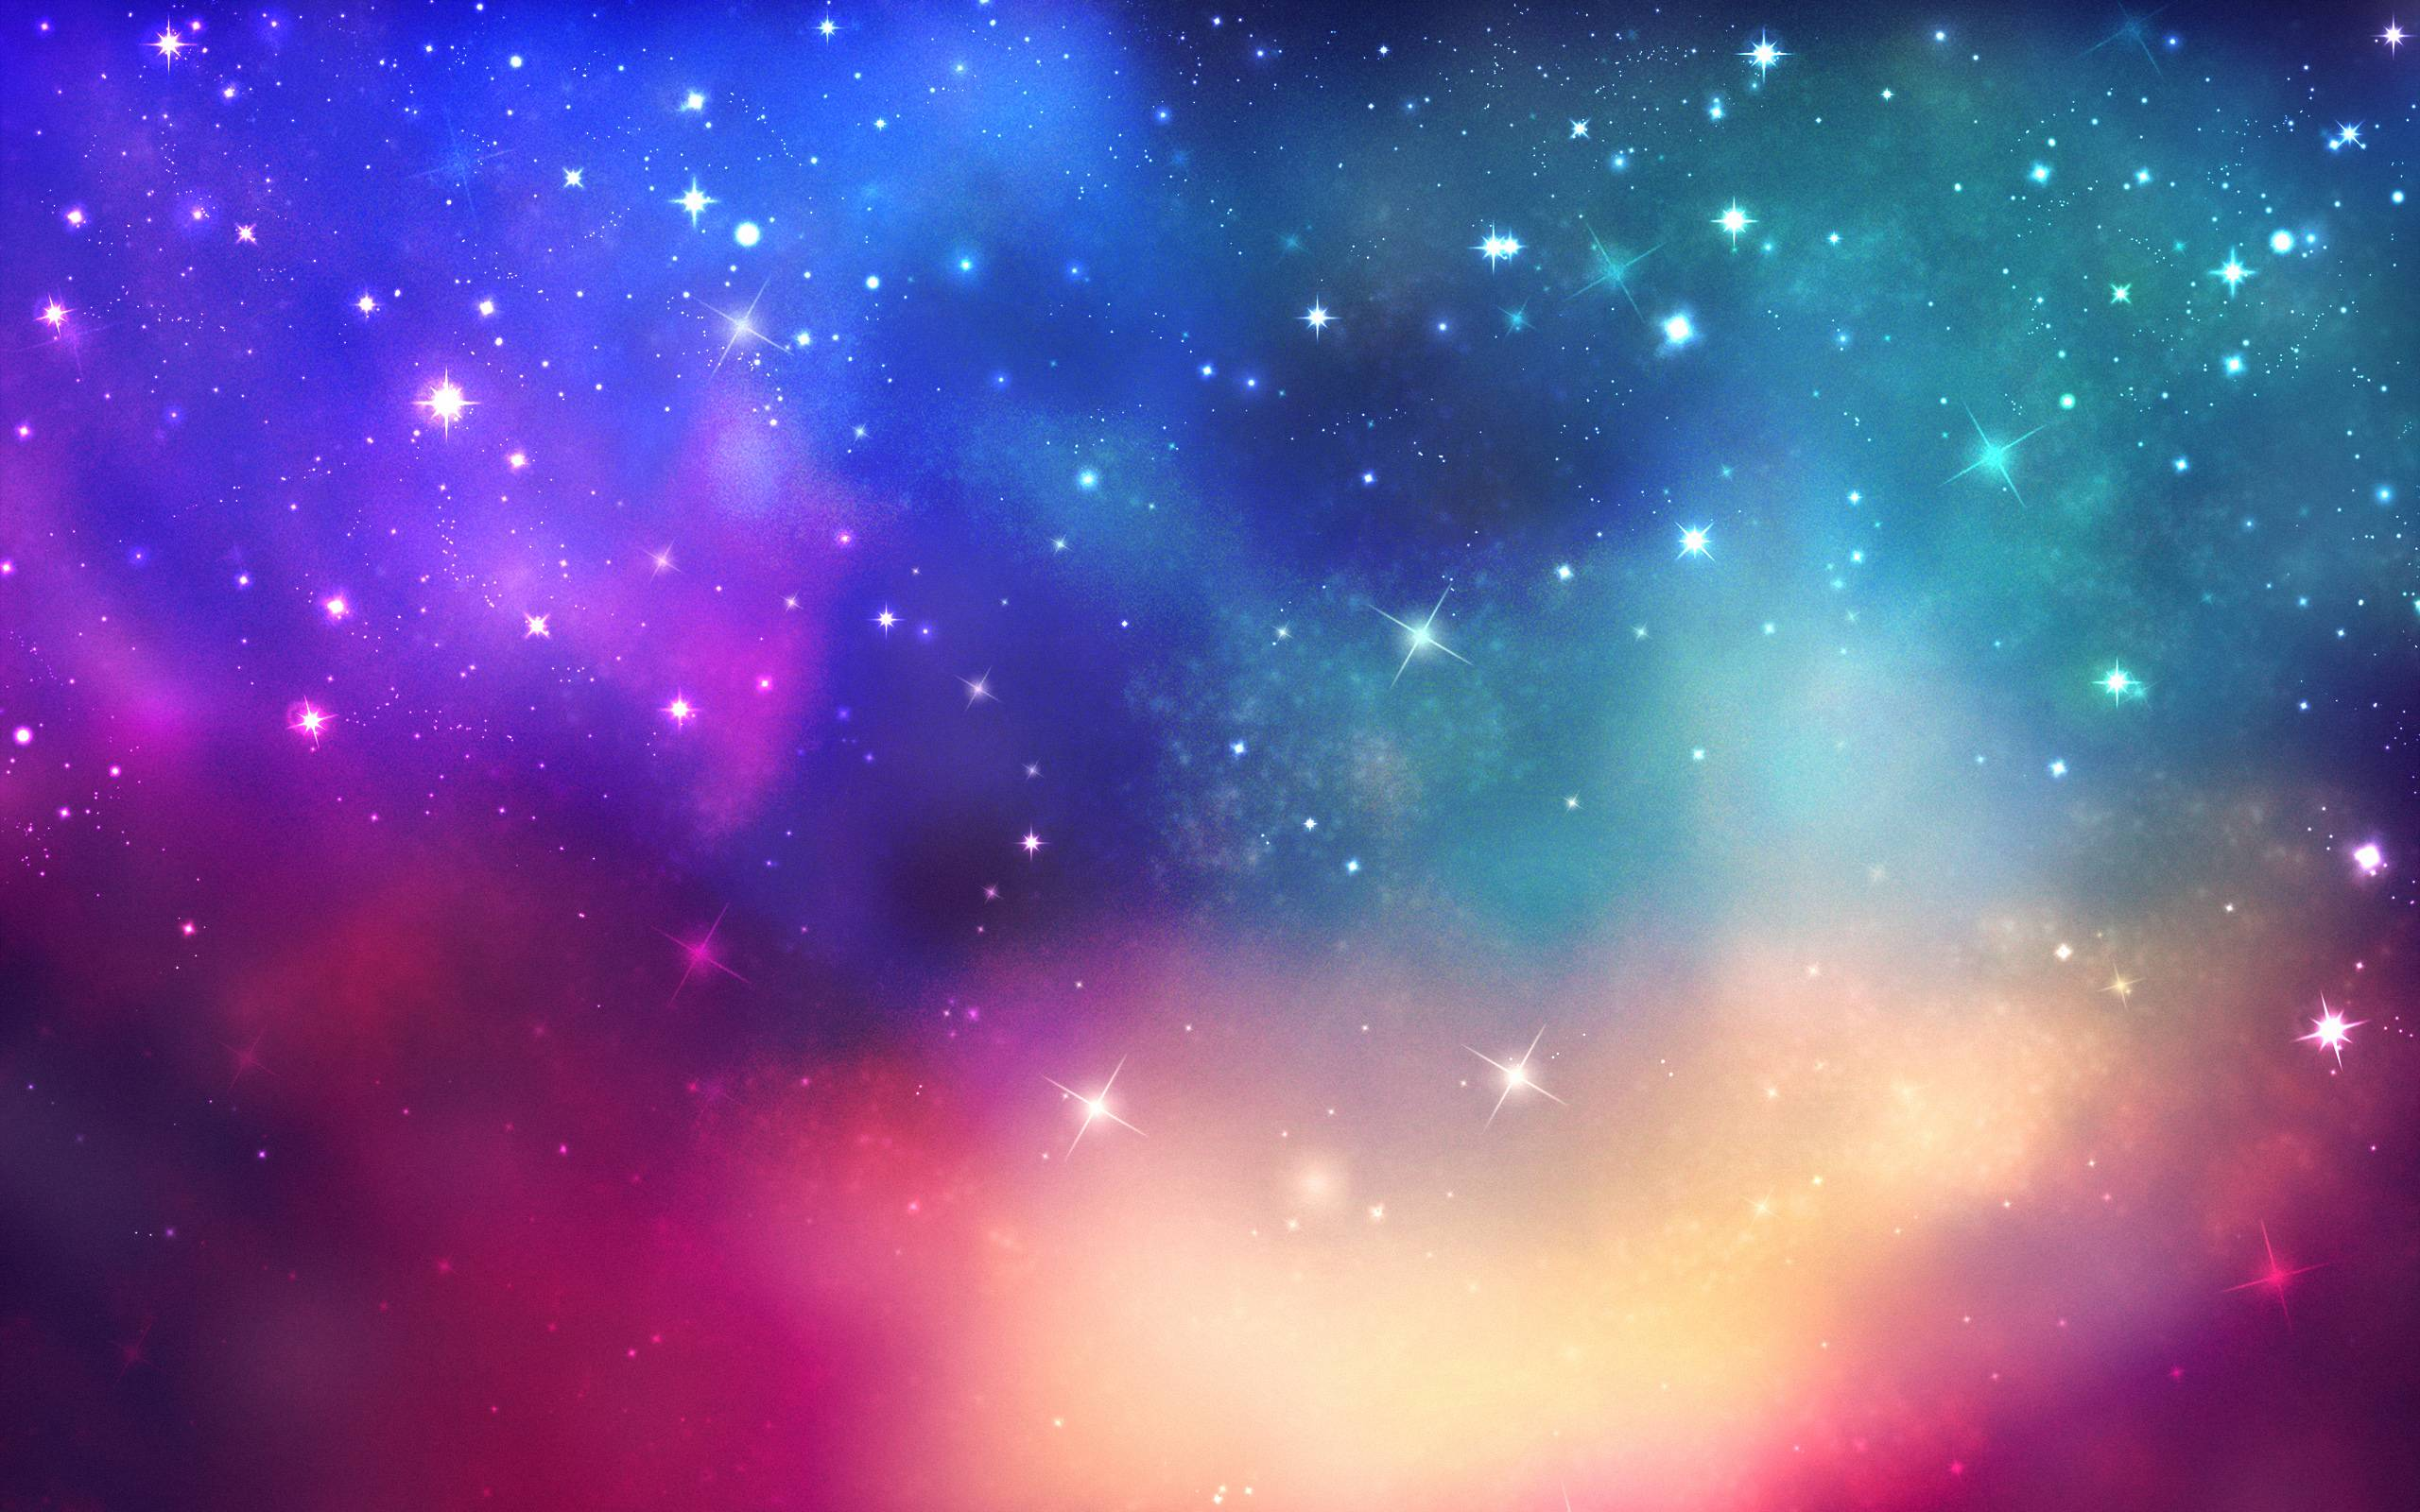 Space Star Backgrounds 2560x1600